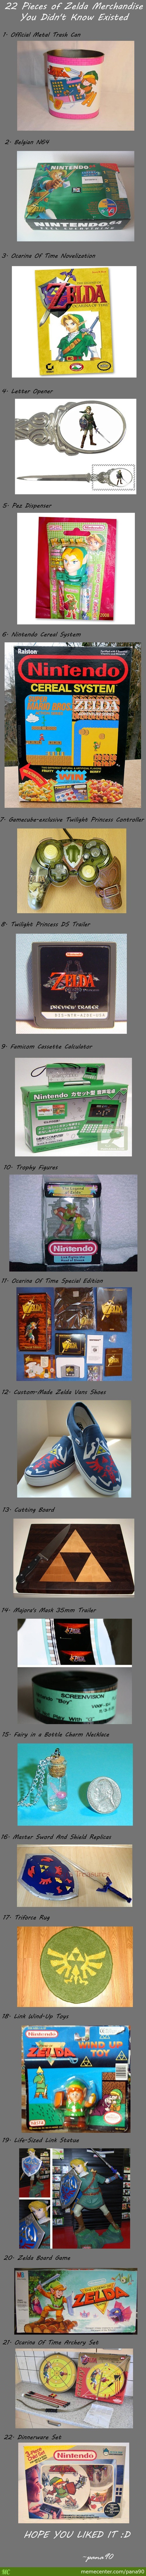 22 Official Zelda Merchancise You Probably Didn't Know Existed (Long Post)